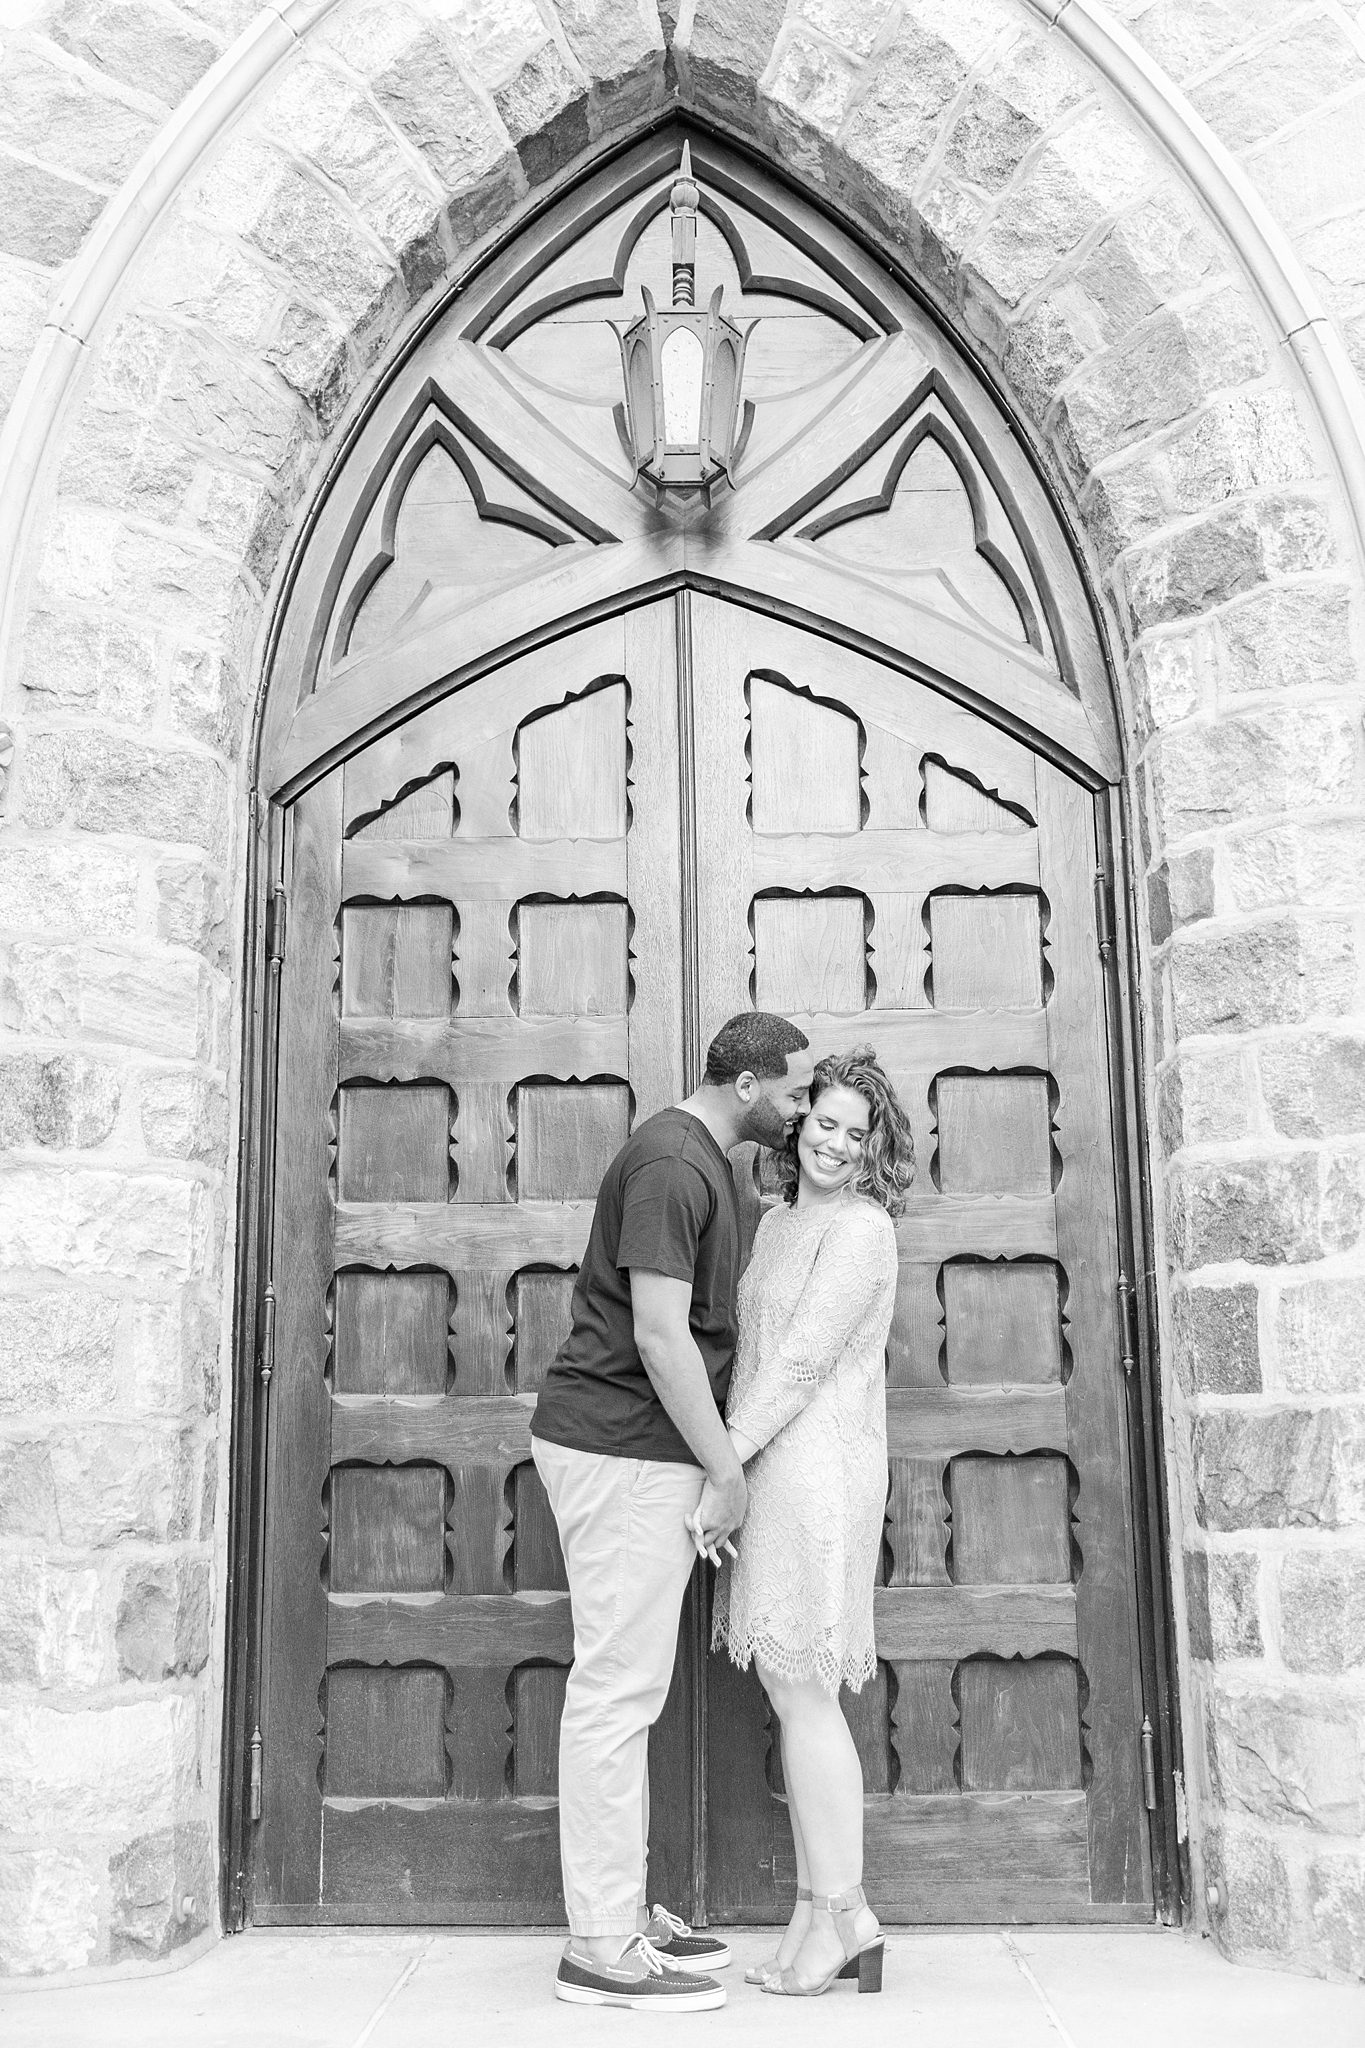 joyful-college-campus-engagement-photography-at-university-of-michigan-in-ann-arbor-mi-by-courtney-carolyn-photography_0001.jpg